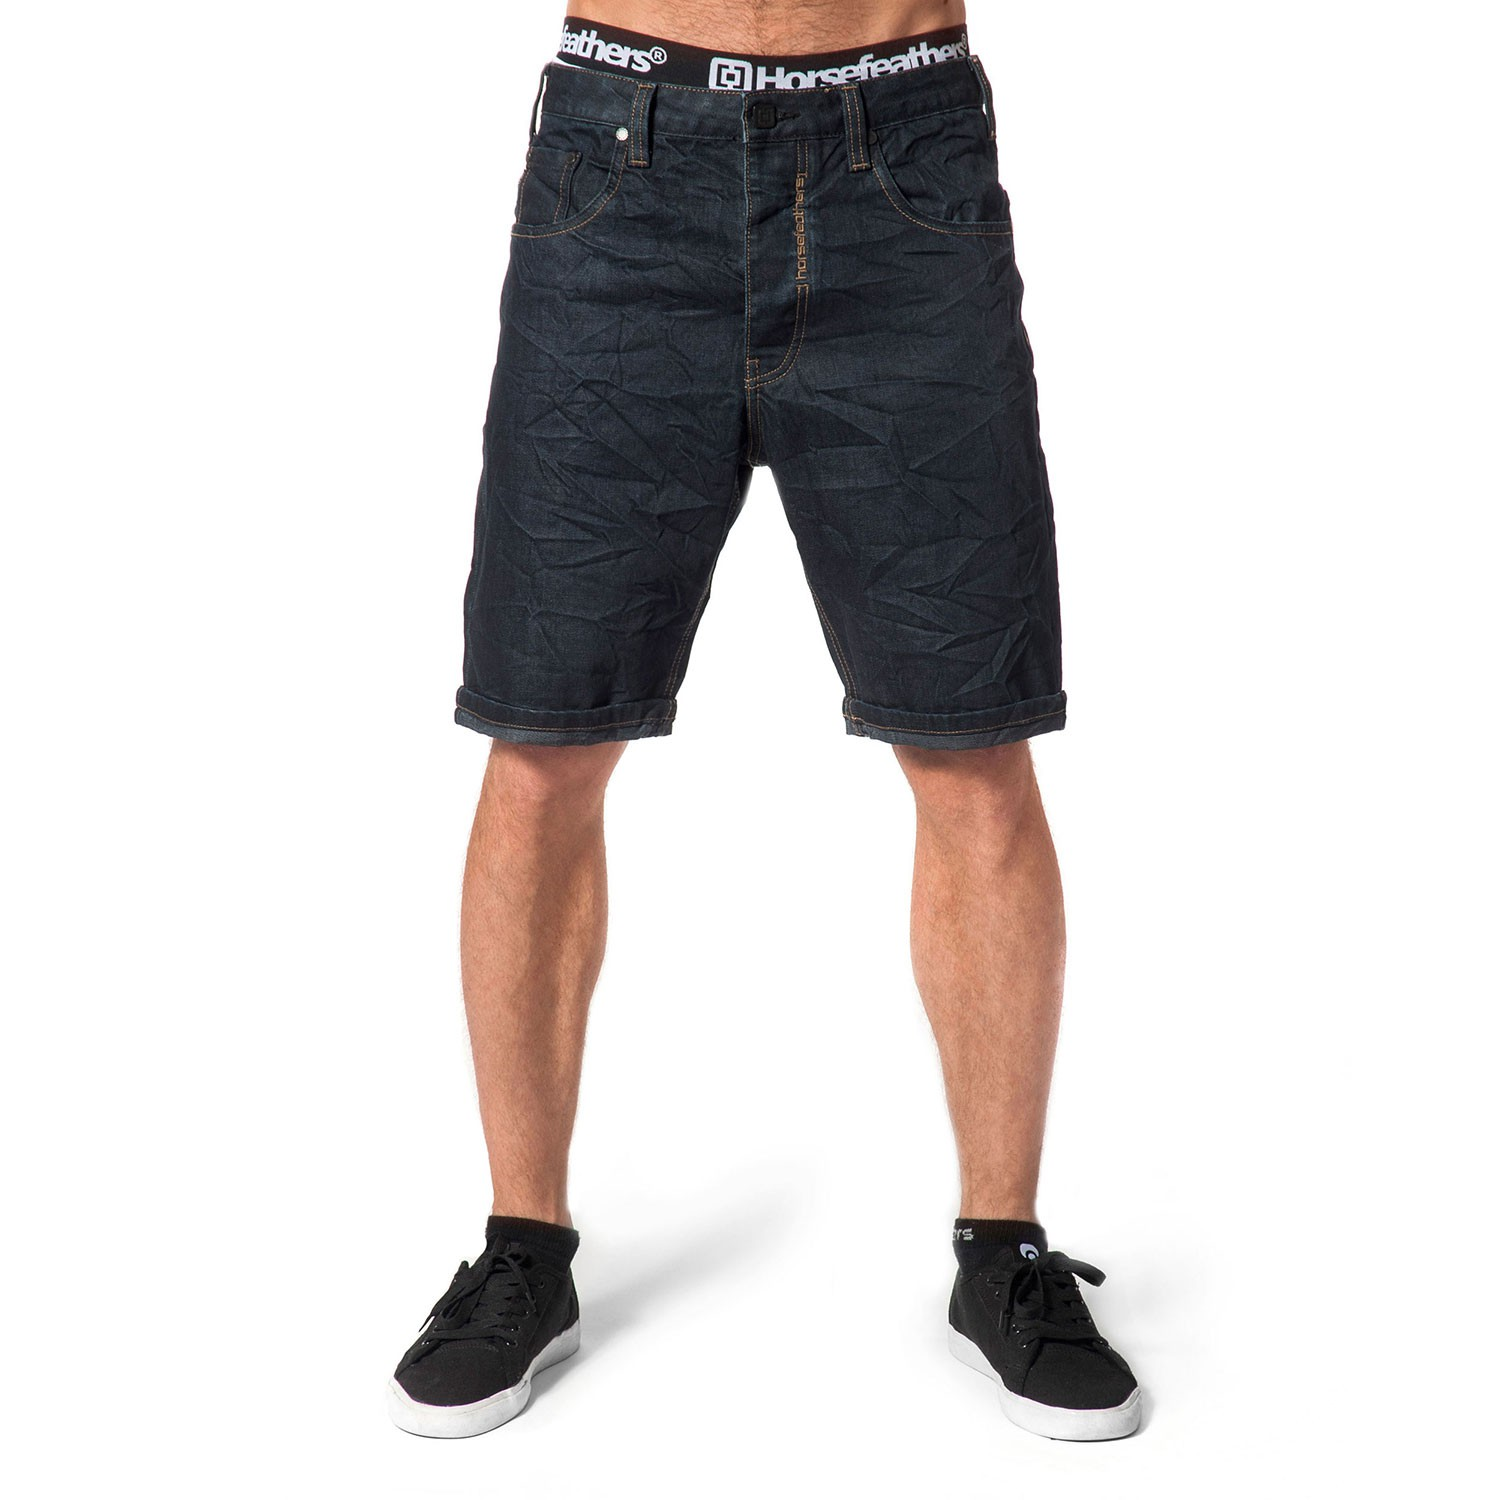 Kraťasy Horsefeathers Ground Shorts dark indigo